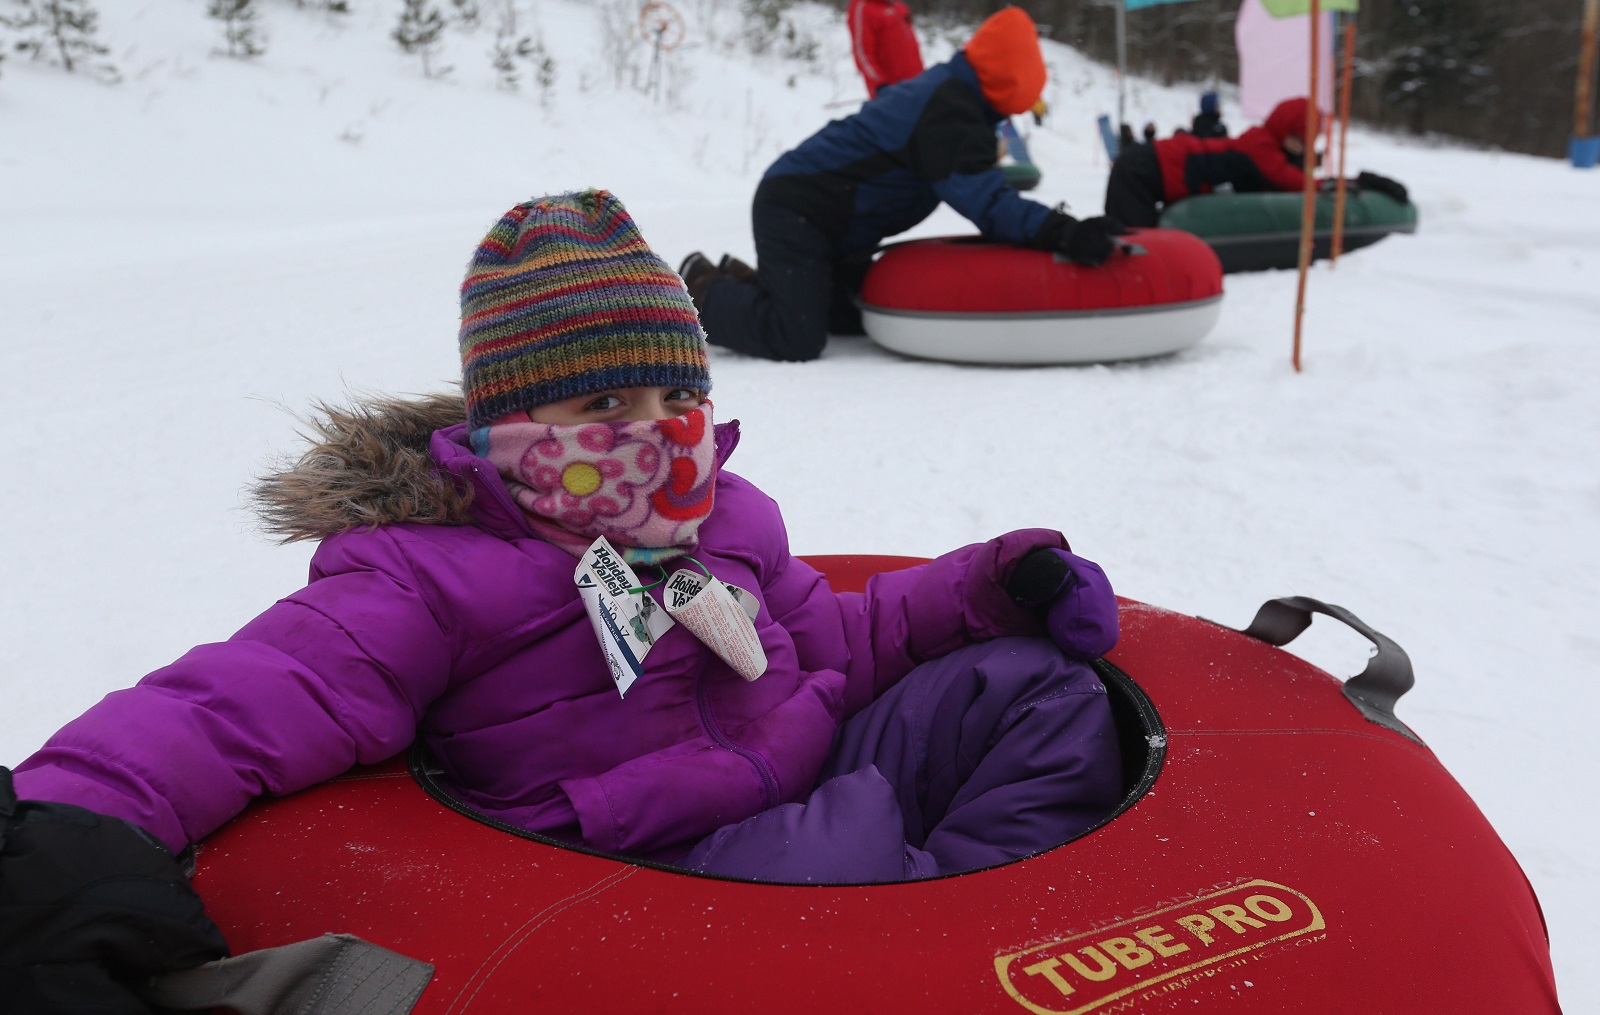 Addison Buchanan, 7, is nervous as it is her first time going down the big hill at Holiday Valley Tubing. One must be 42 inches tall to ride the big hill.  (Sharon Cantillon/Buffalo News)